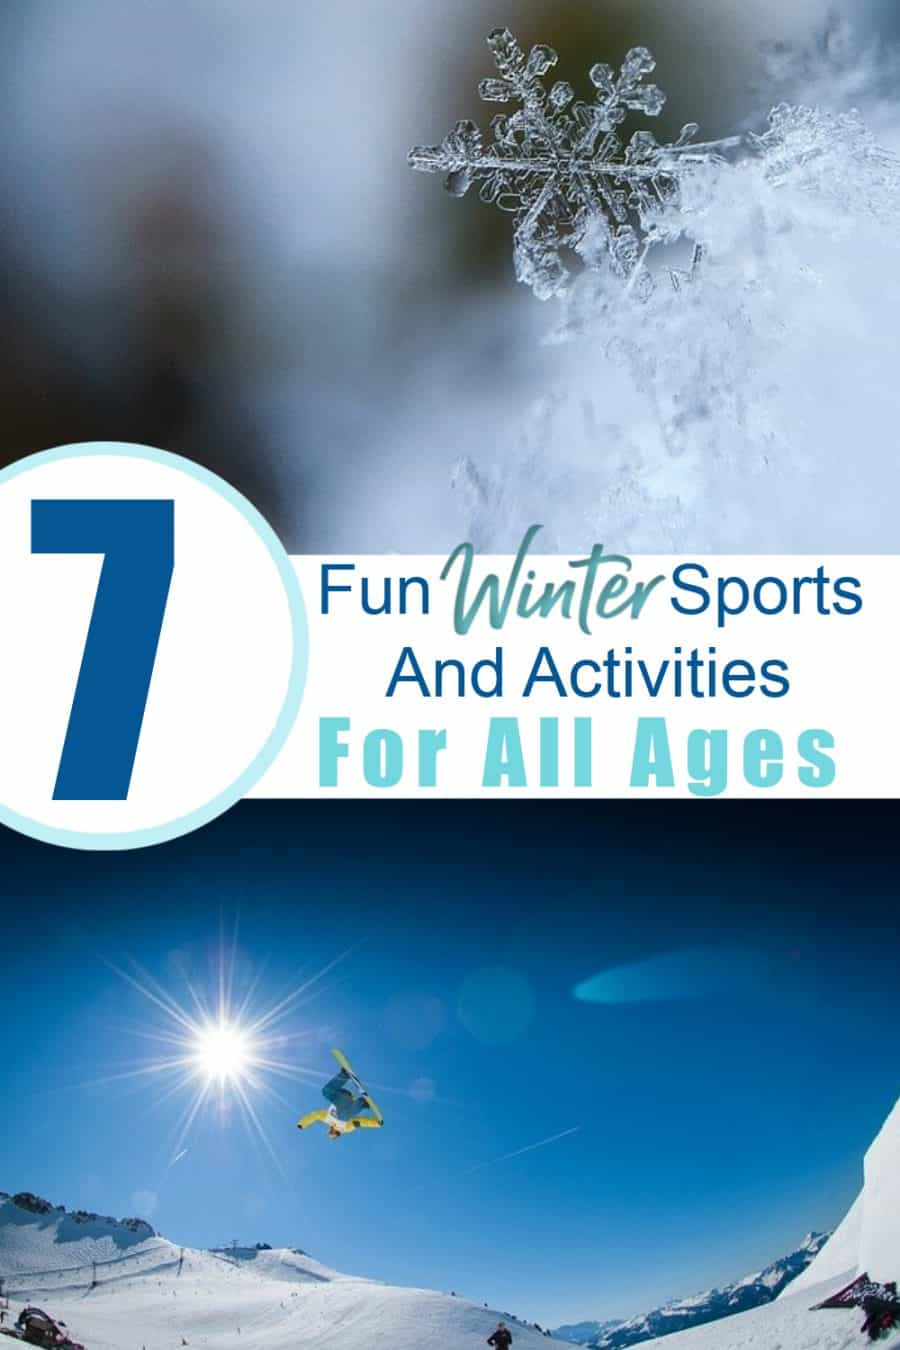 Fun Winter Sports And Activities For All Ages